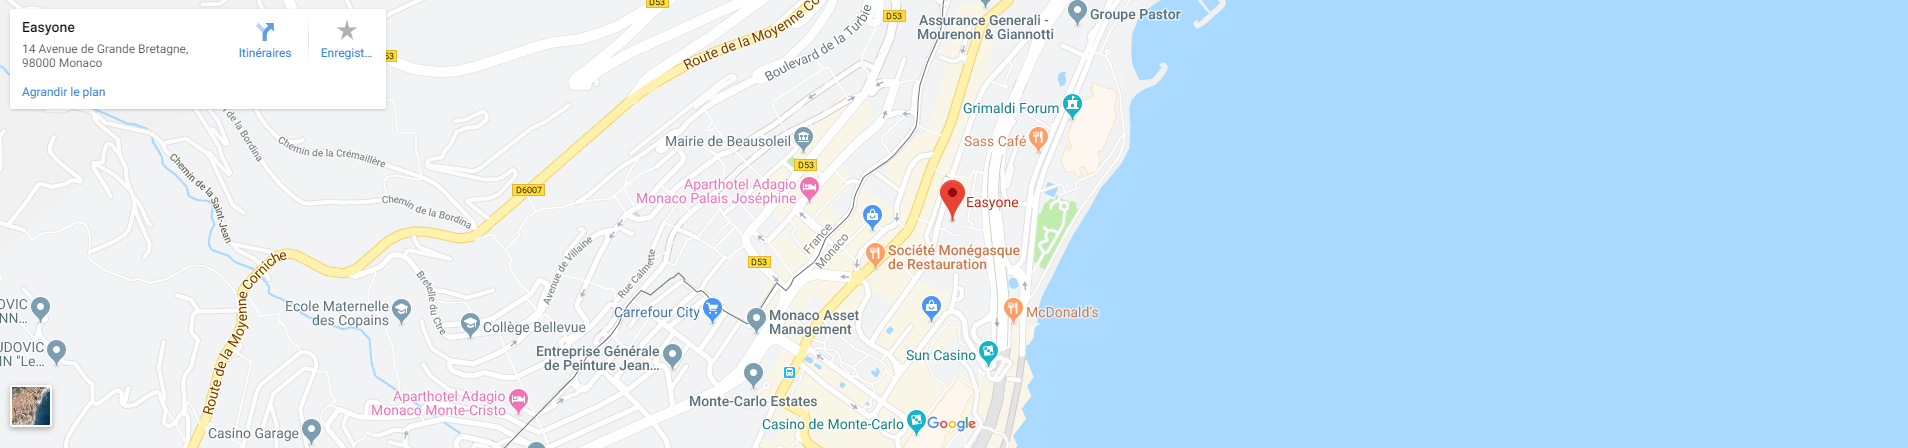 EasyOne on a map ! Find us